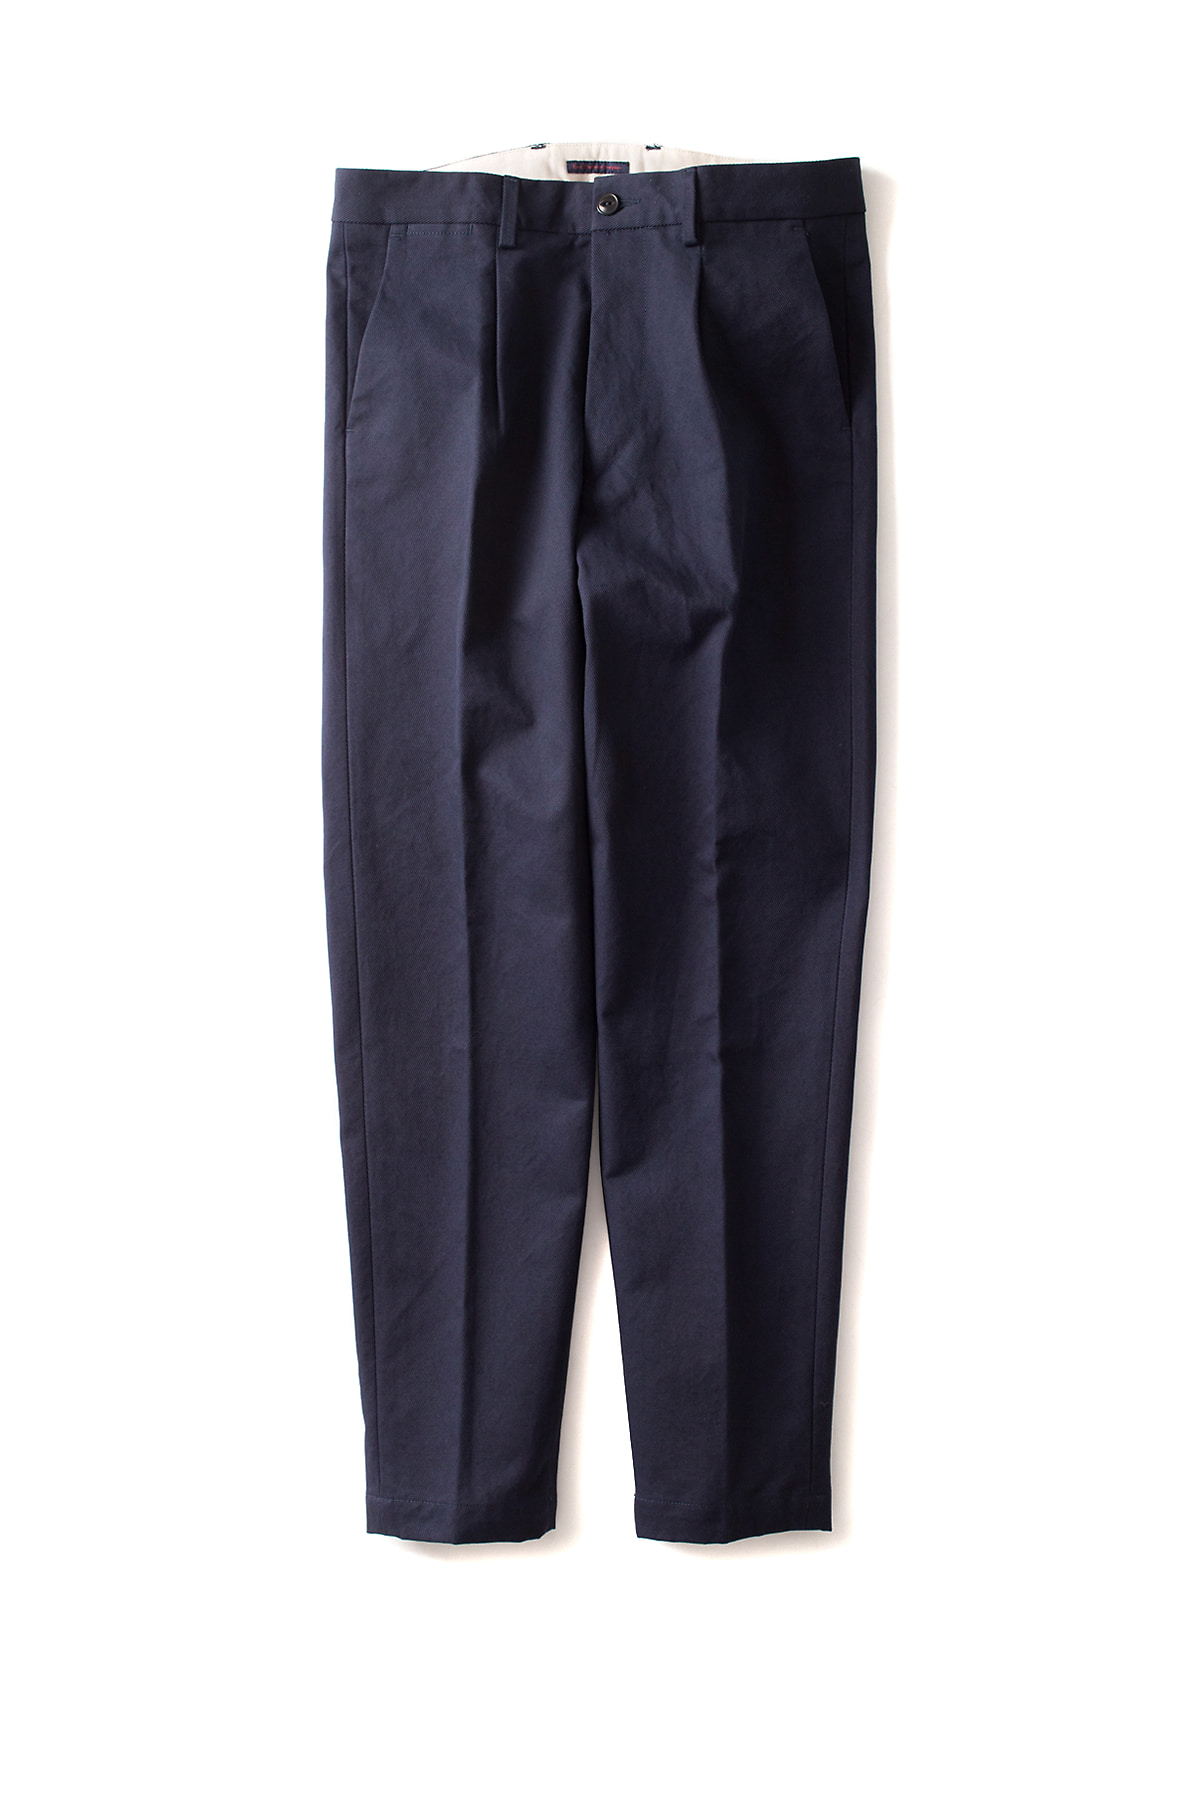 East Harbour Surplus : Bryan14 Pants (Blue)